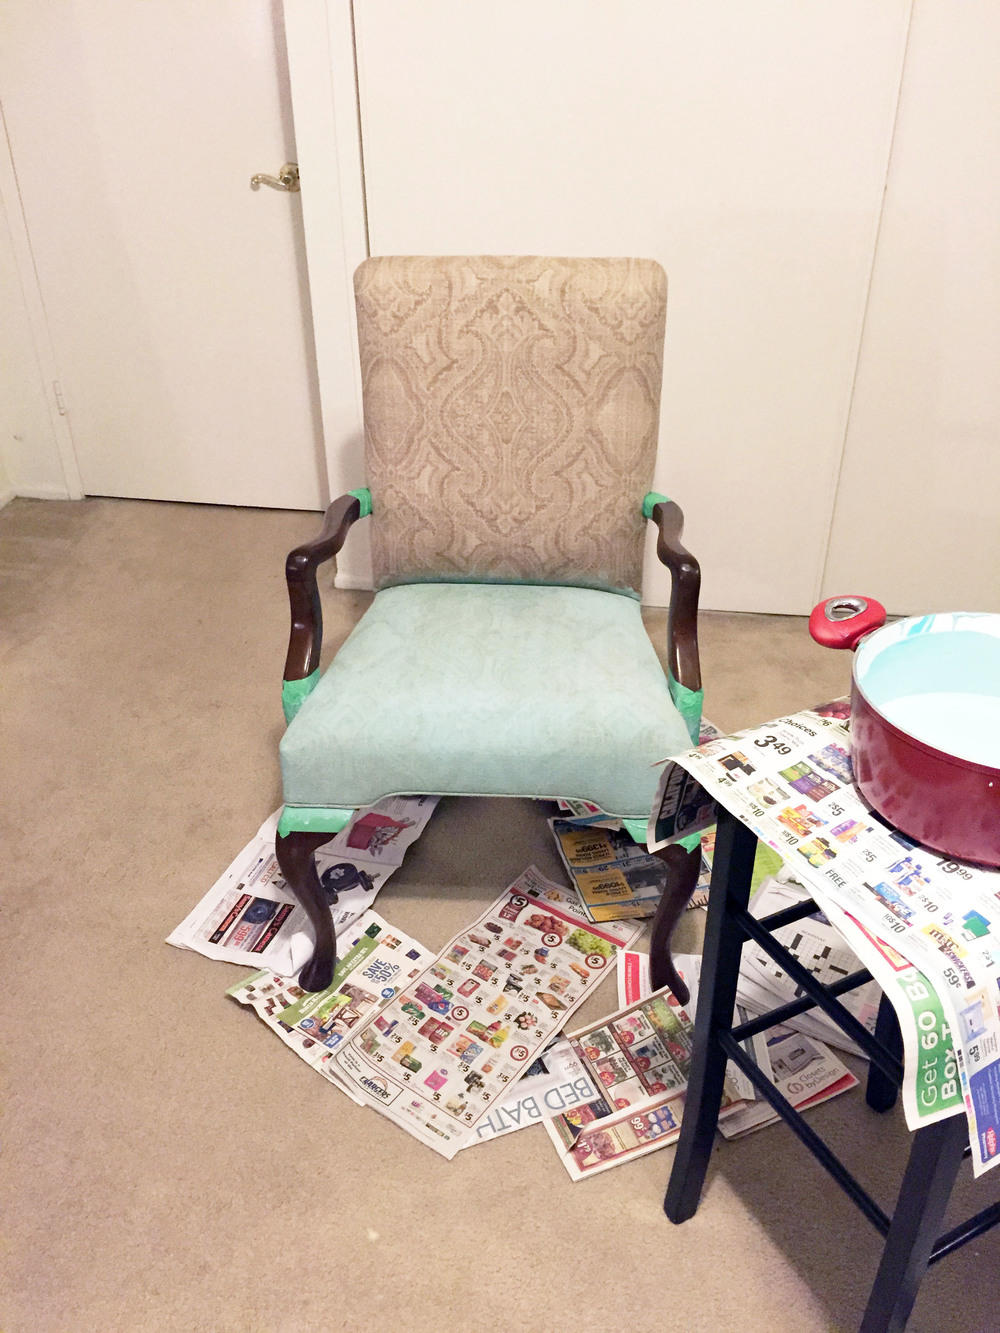 Use a spray bottle full of water to lightly mist the chair and soften the fabric. Apply paint!